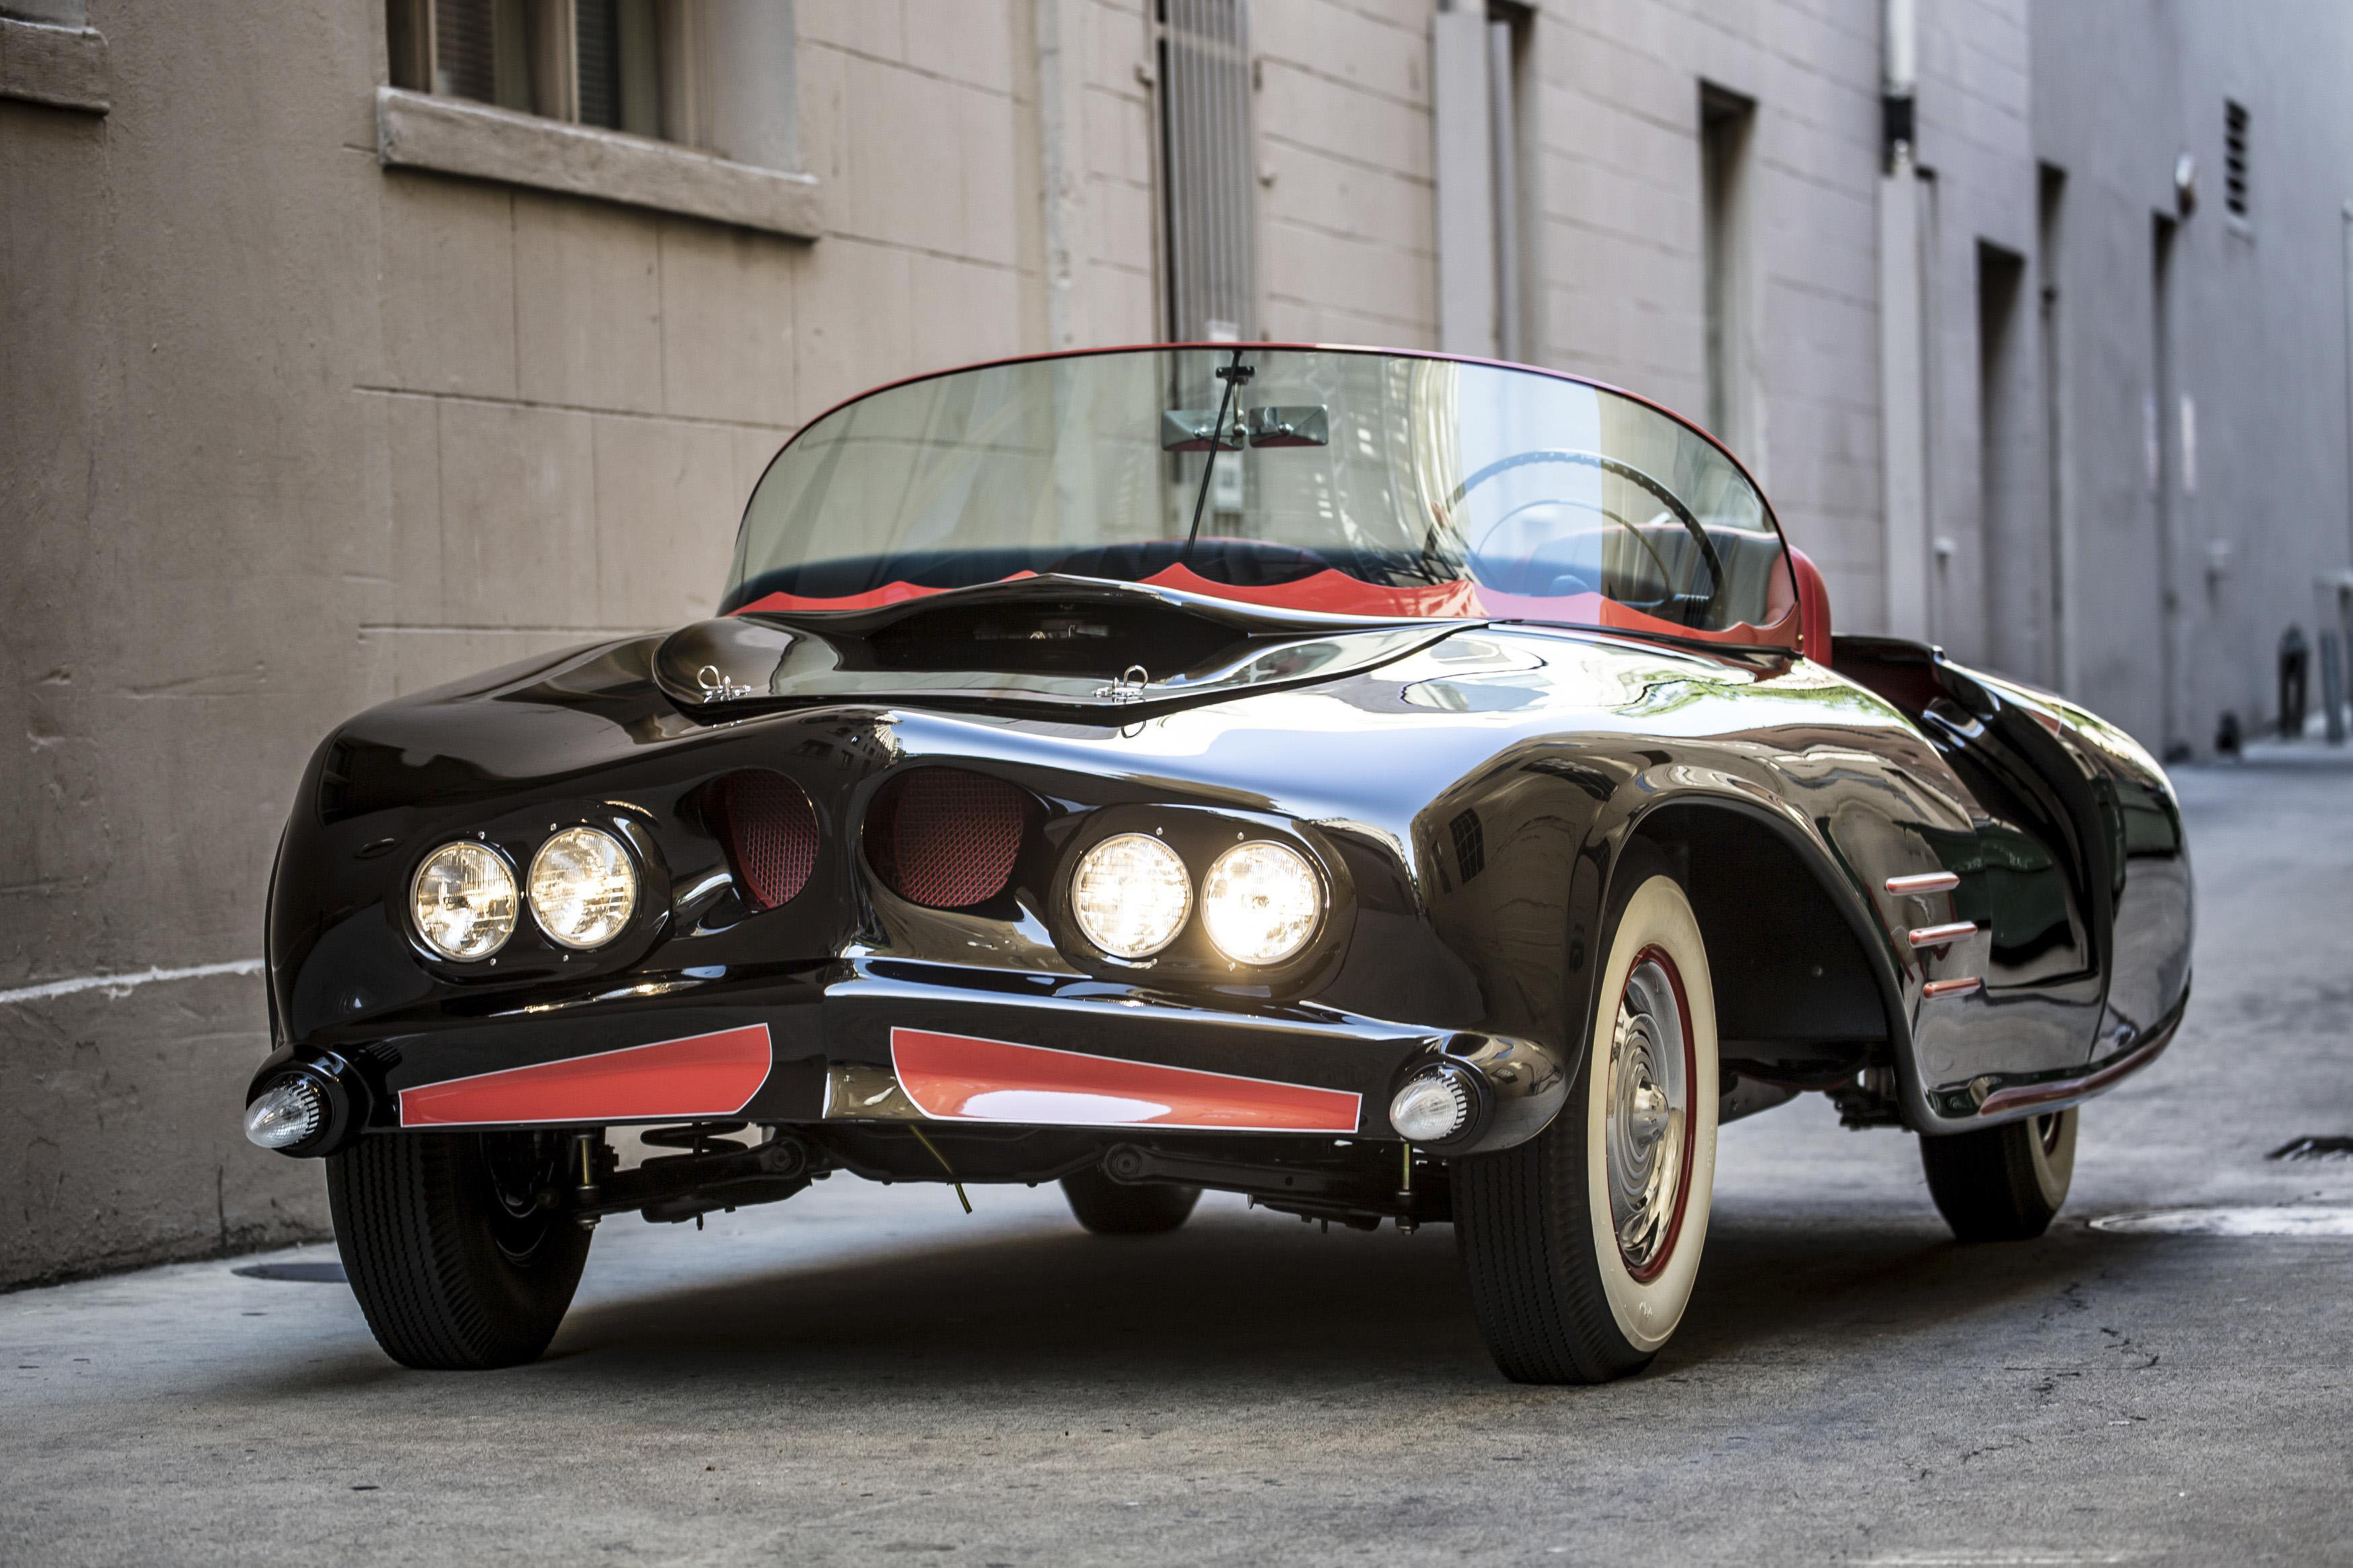 The 1963 car is the earliest known licensed copy of Batman's famed vehicle. | REUTERS